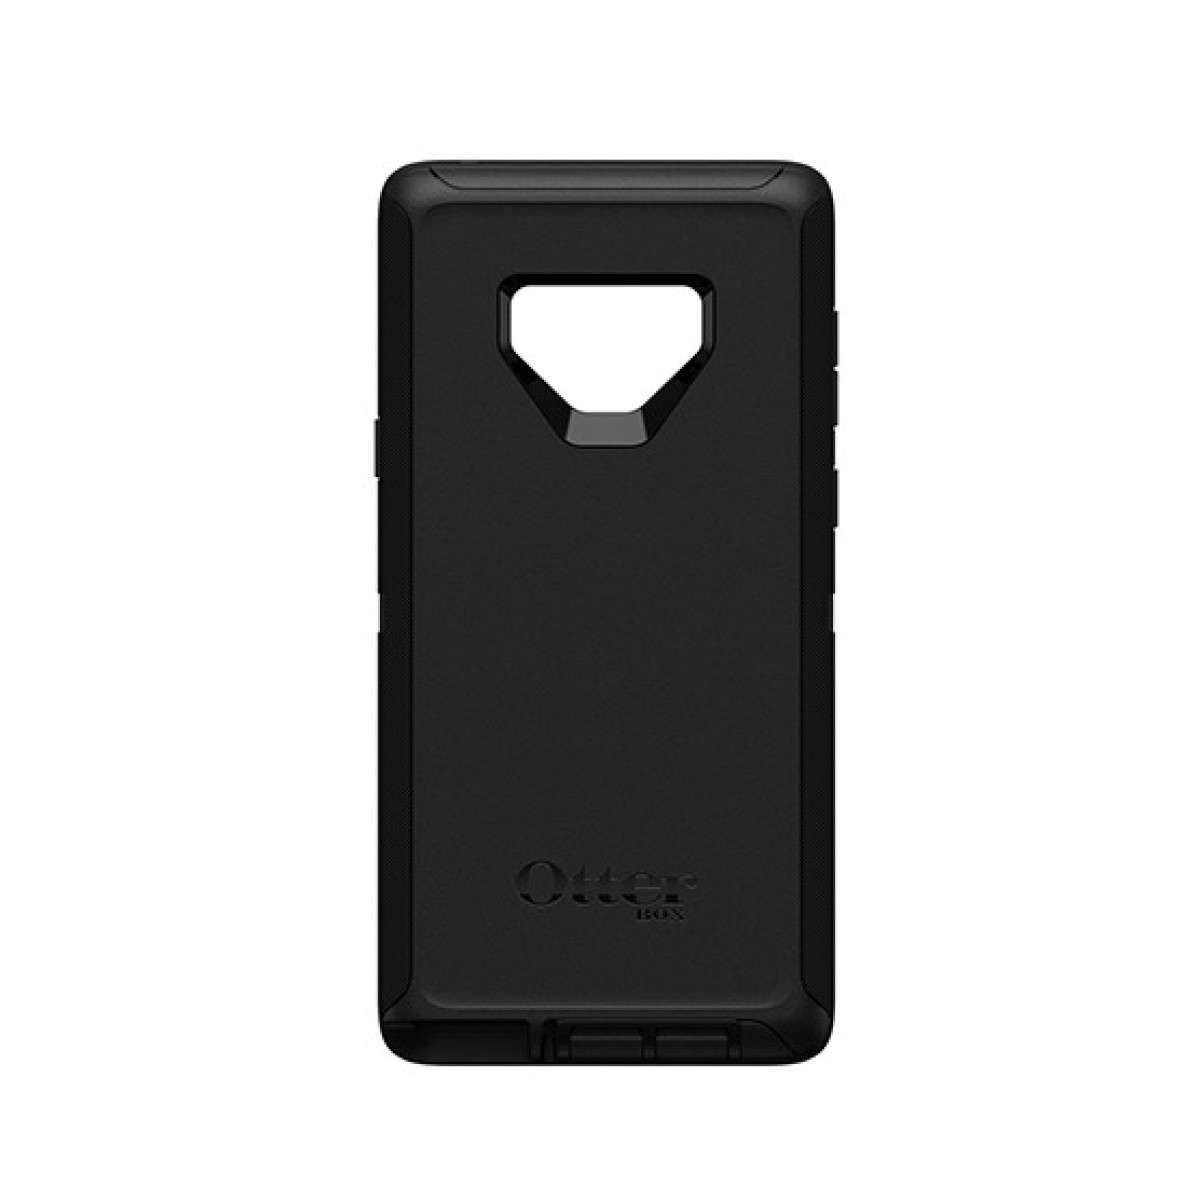 new product abe39 1b45f OtterBox Defender Series Black Case For Galaxy Note 9